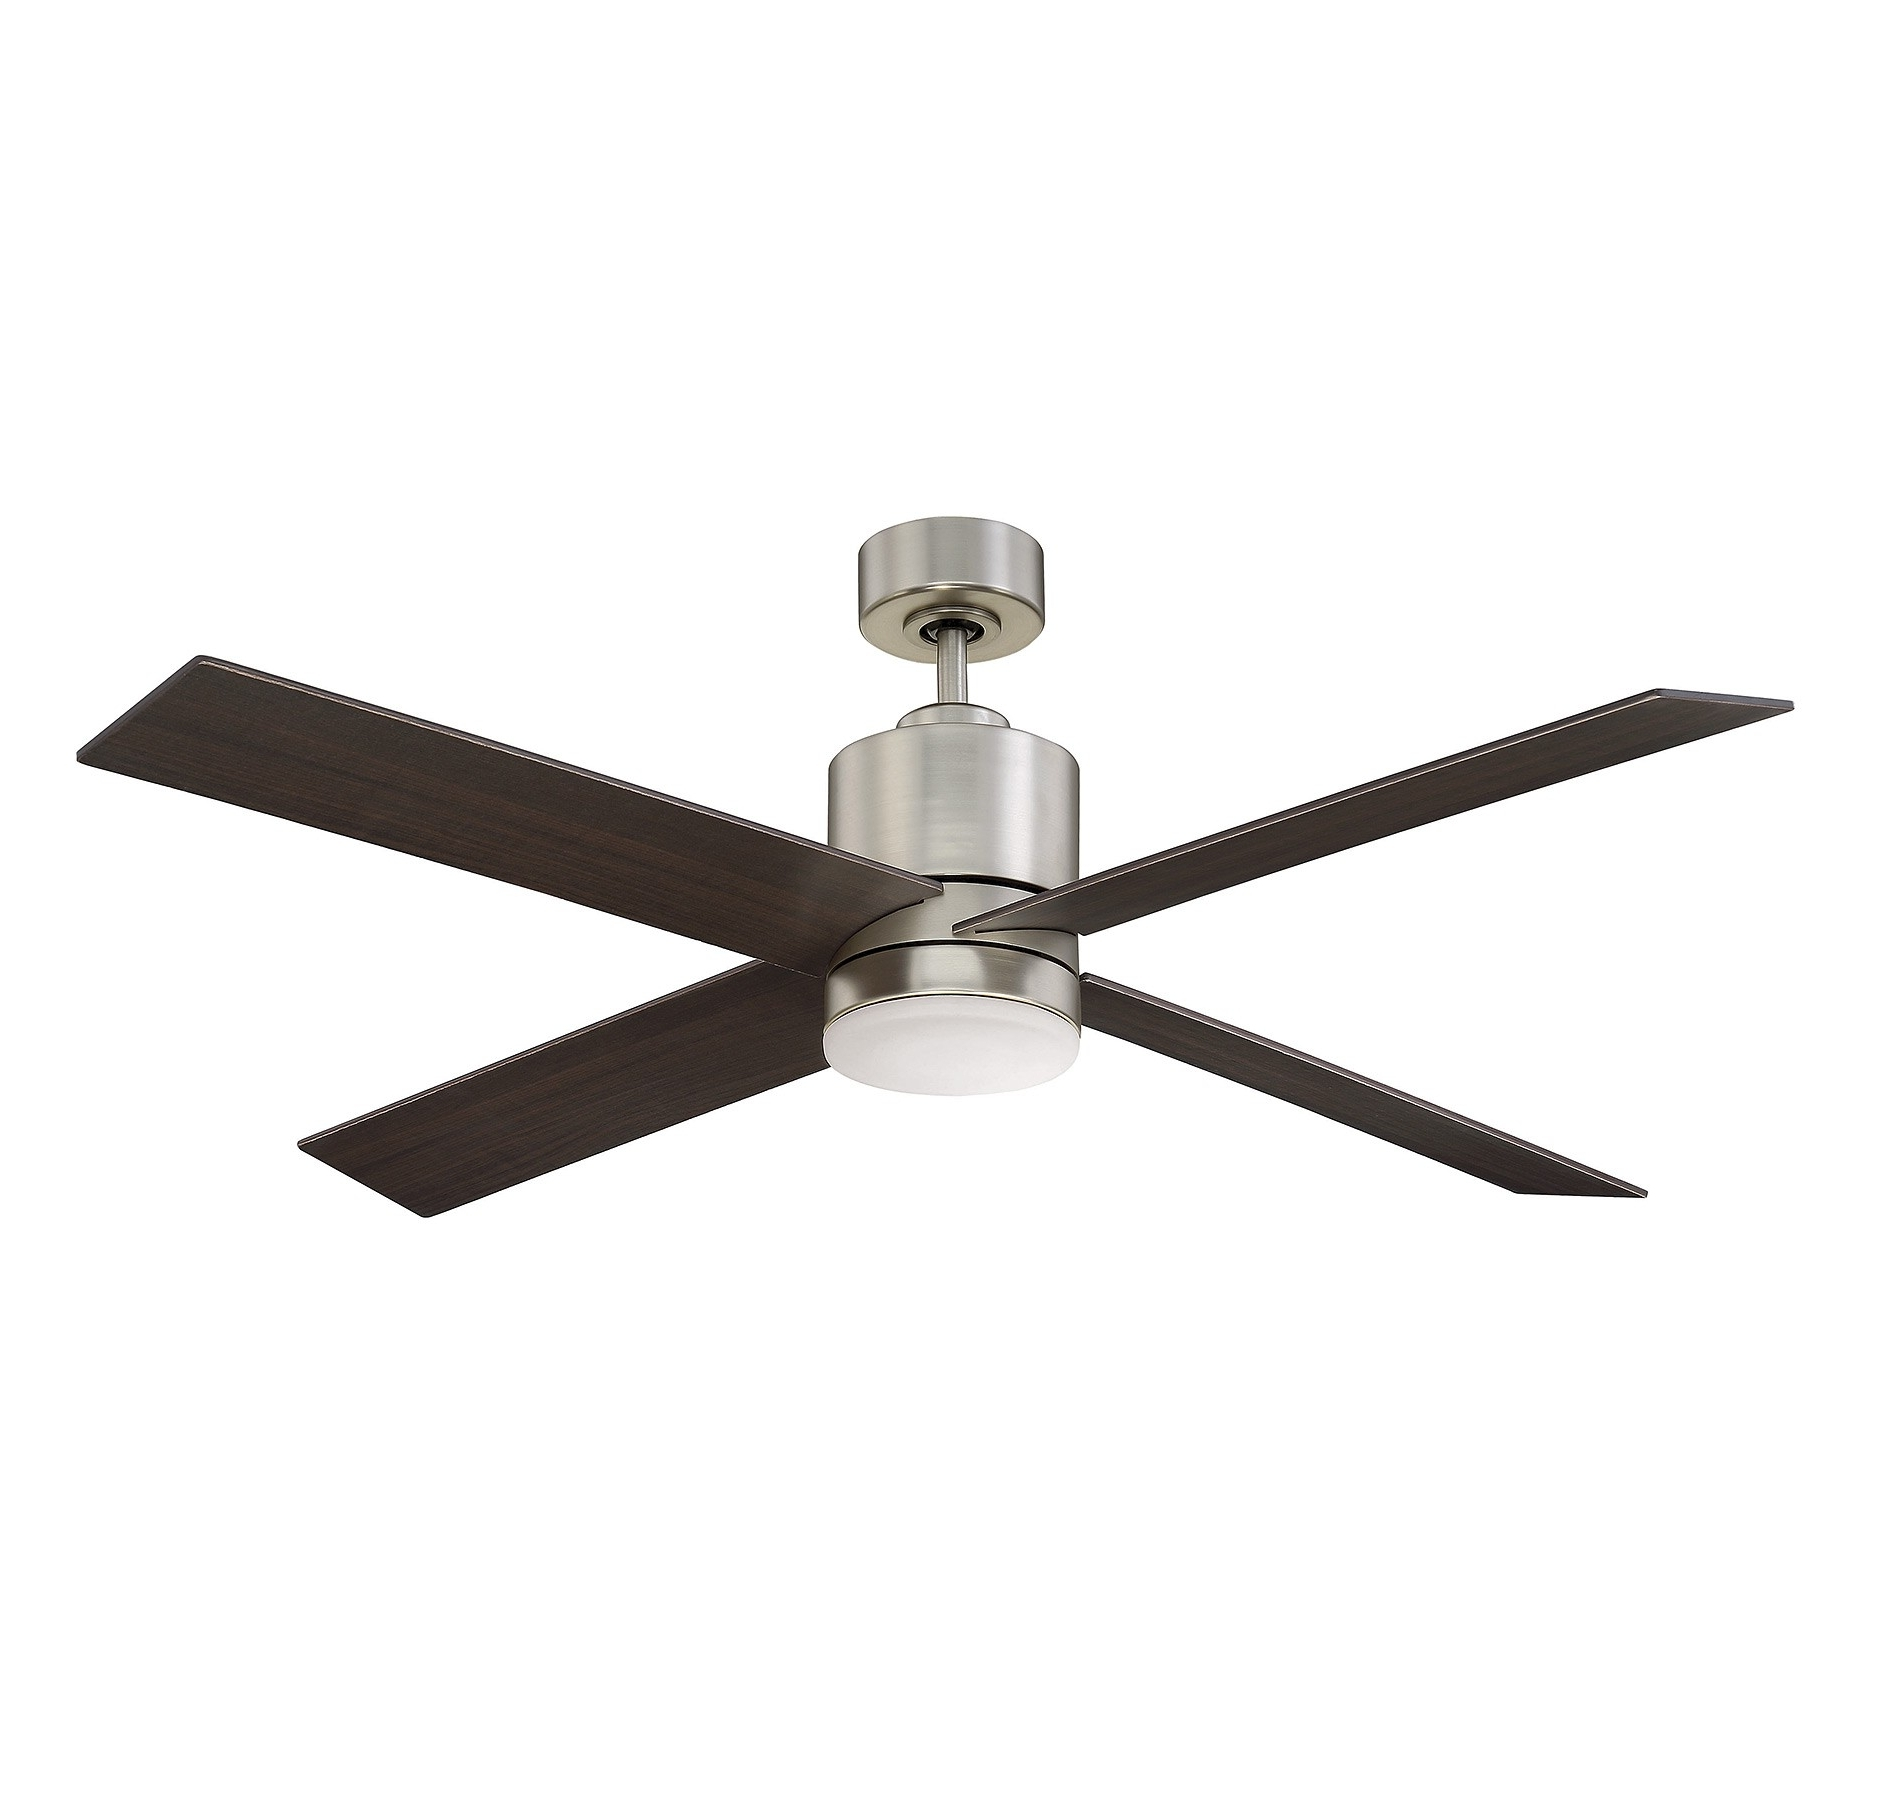 Coastal Outdoor Ceiling Fans Throughout Most Popular 52 6110 4cn Sn Dayton 52 Inch 4 Blade Ceiling Fansavoy House (View 13 of 20)